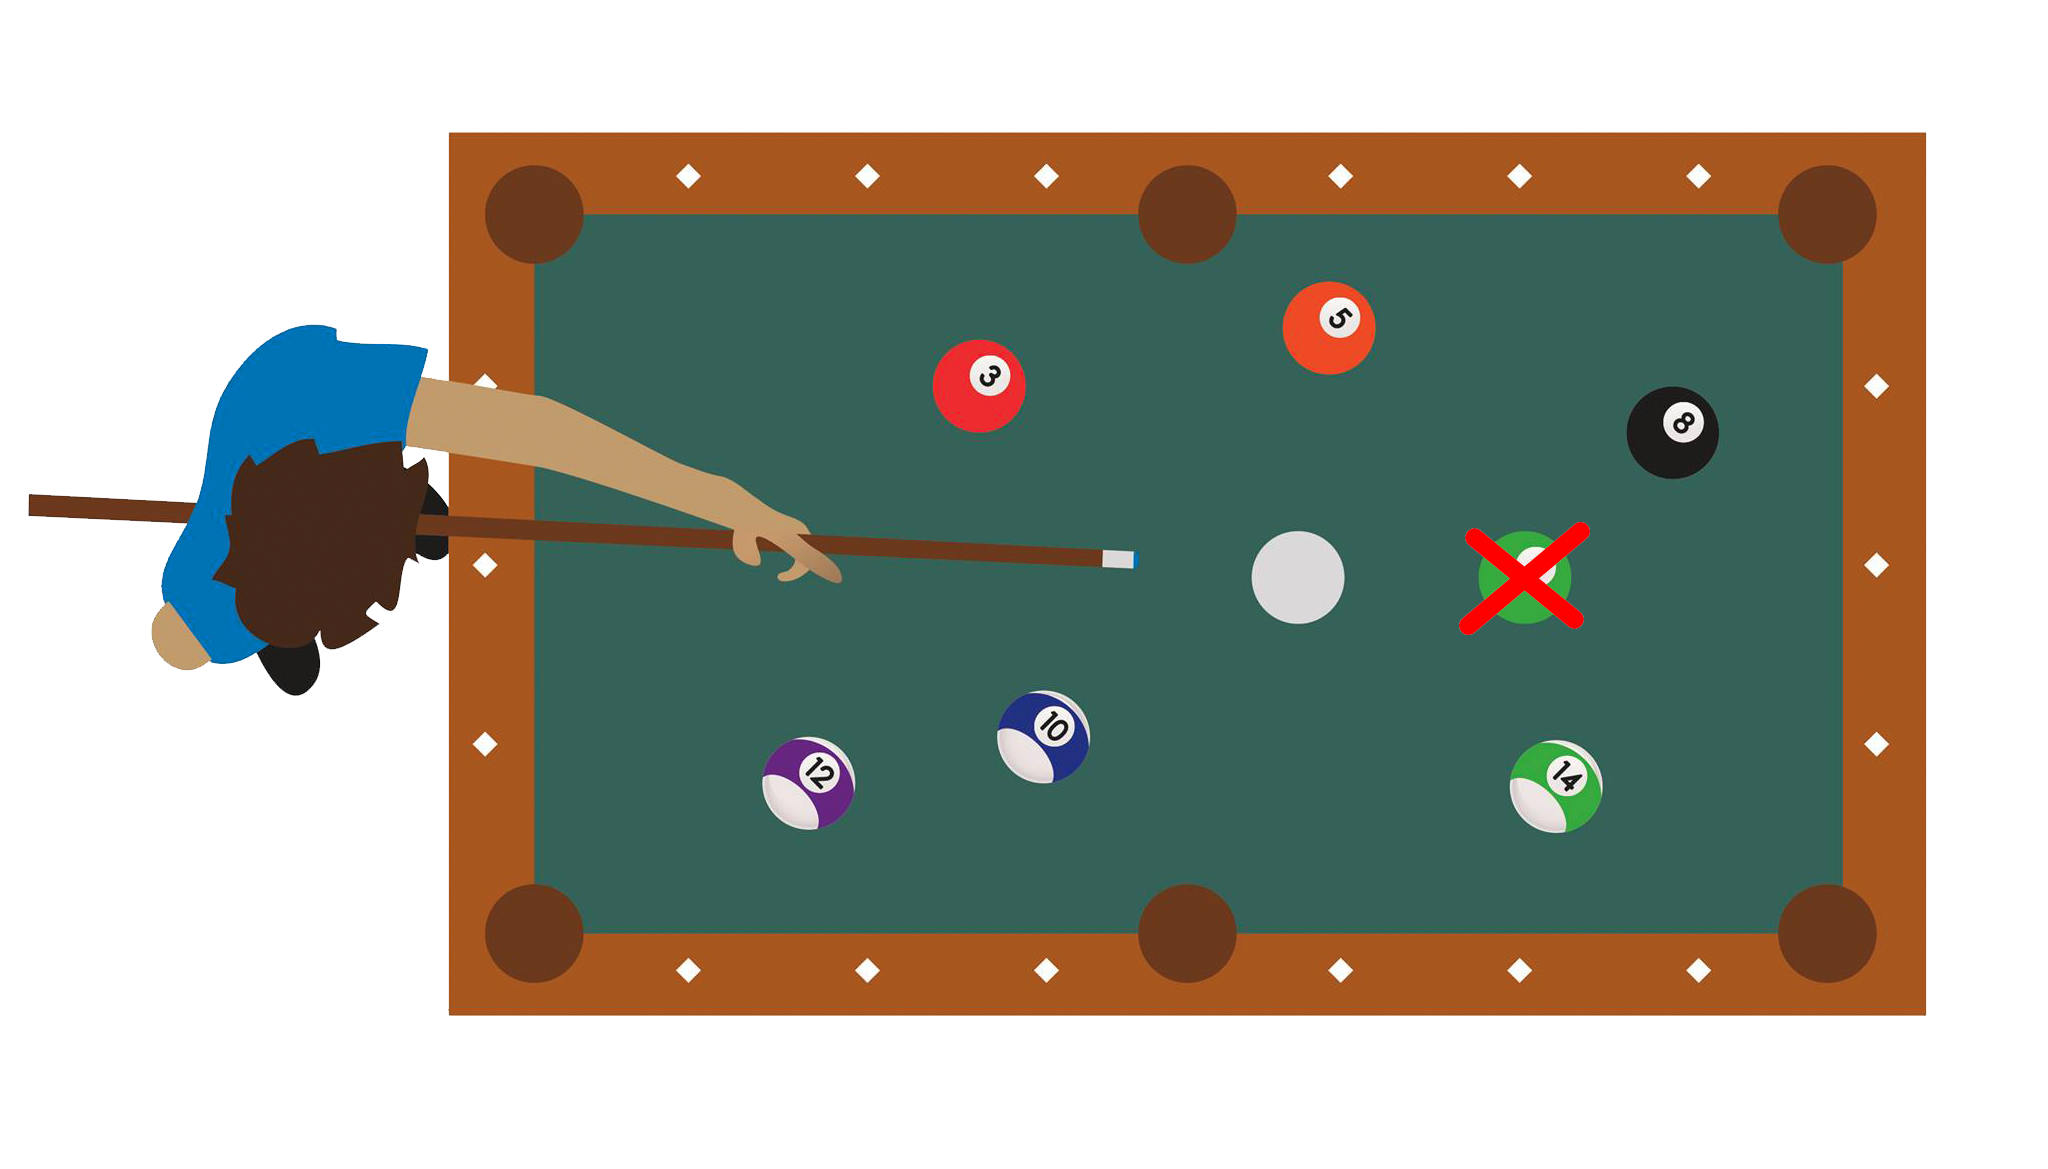 Chapter 1: How To Expertly Hold A Cue For Perfect Accuracy